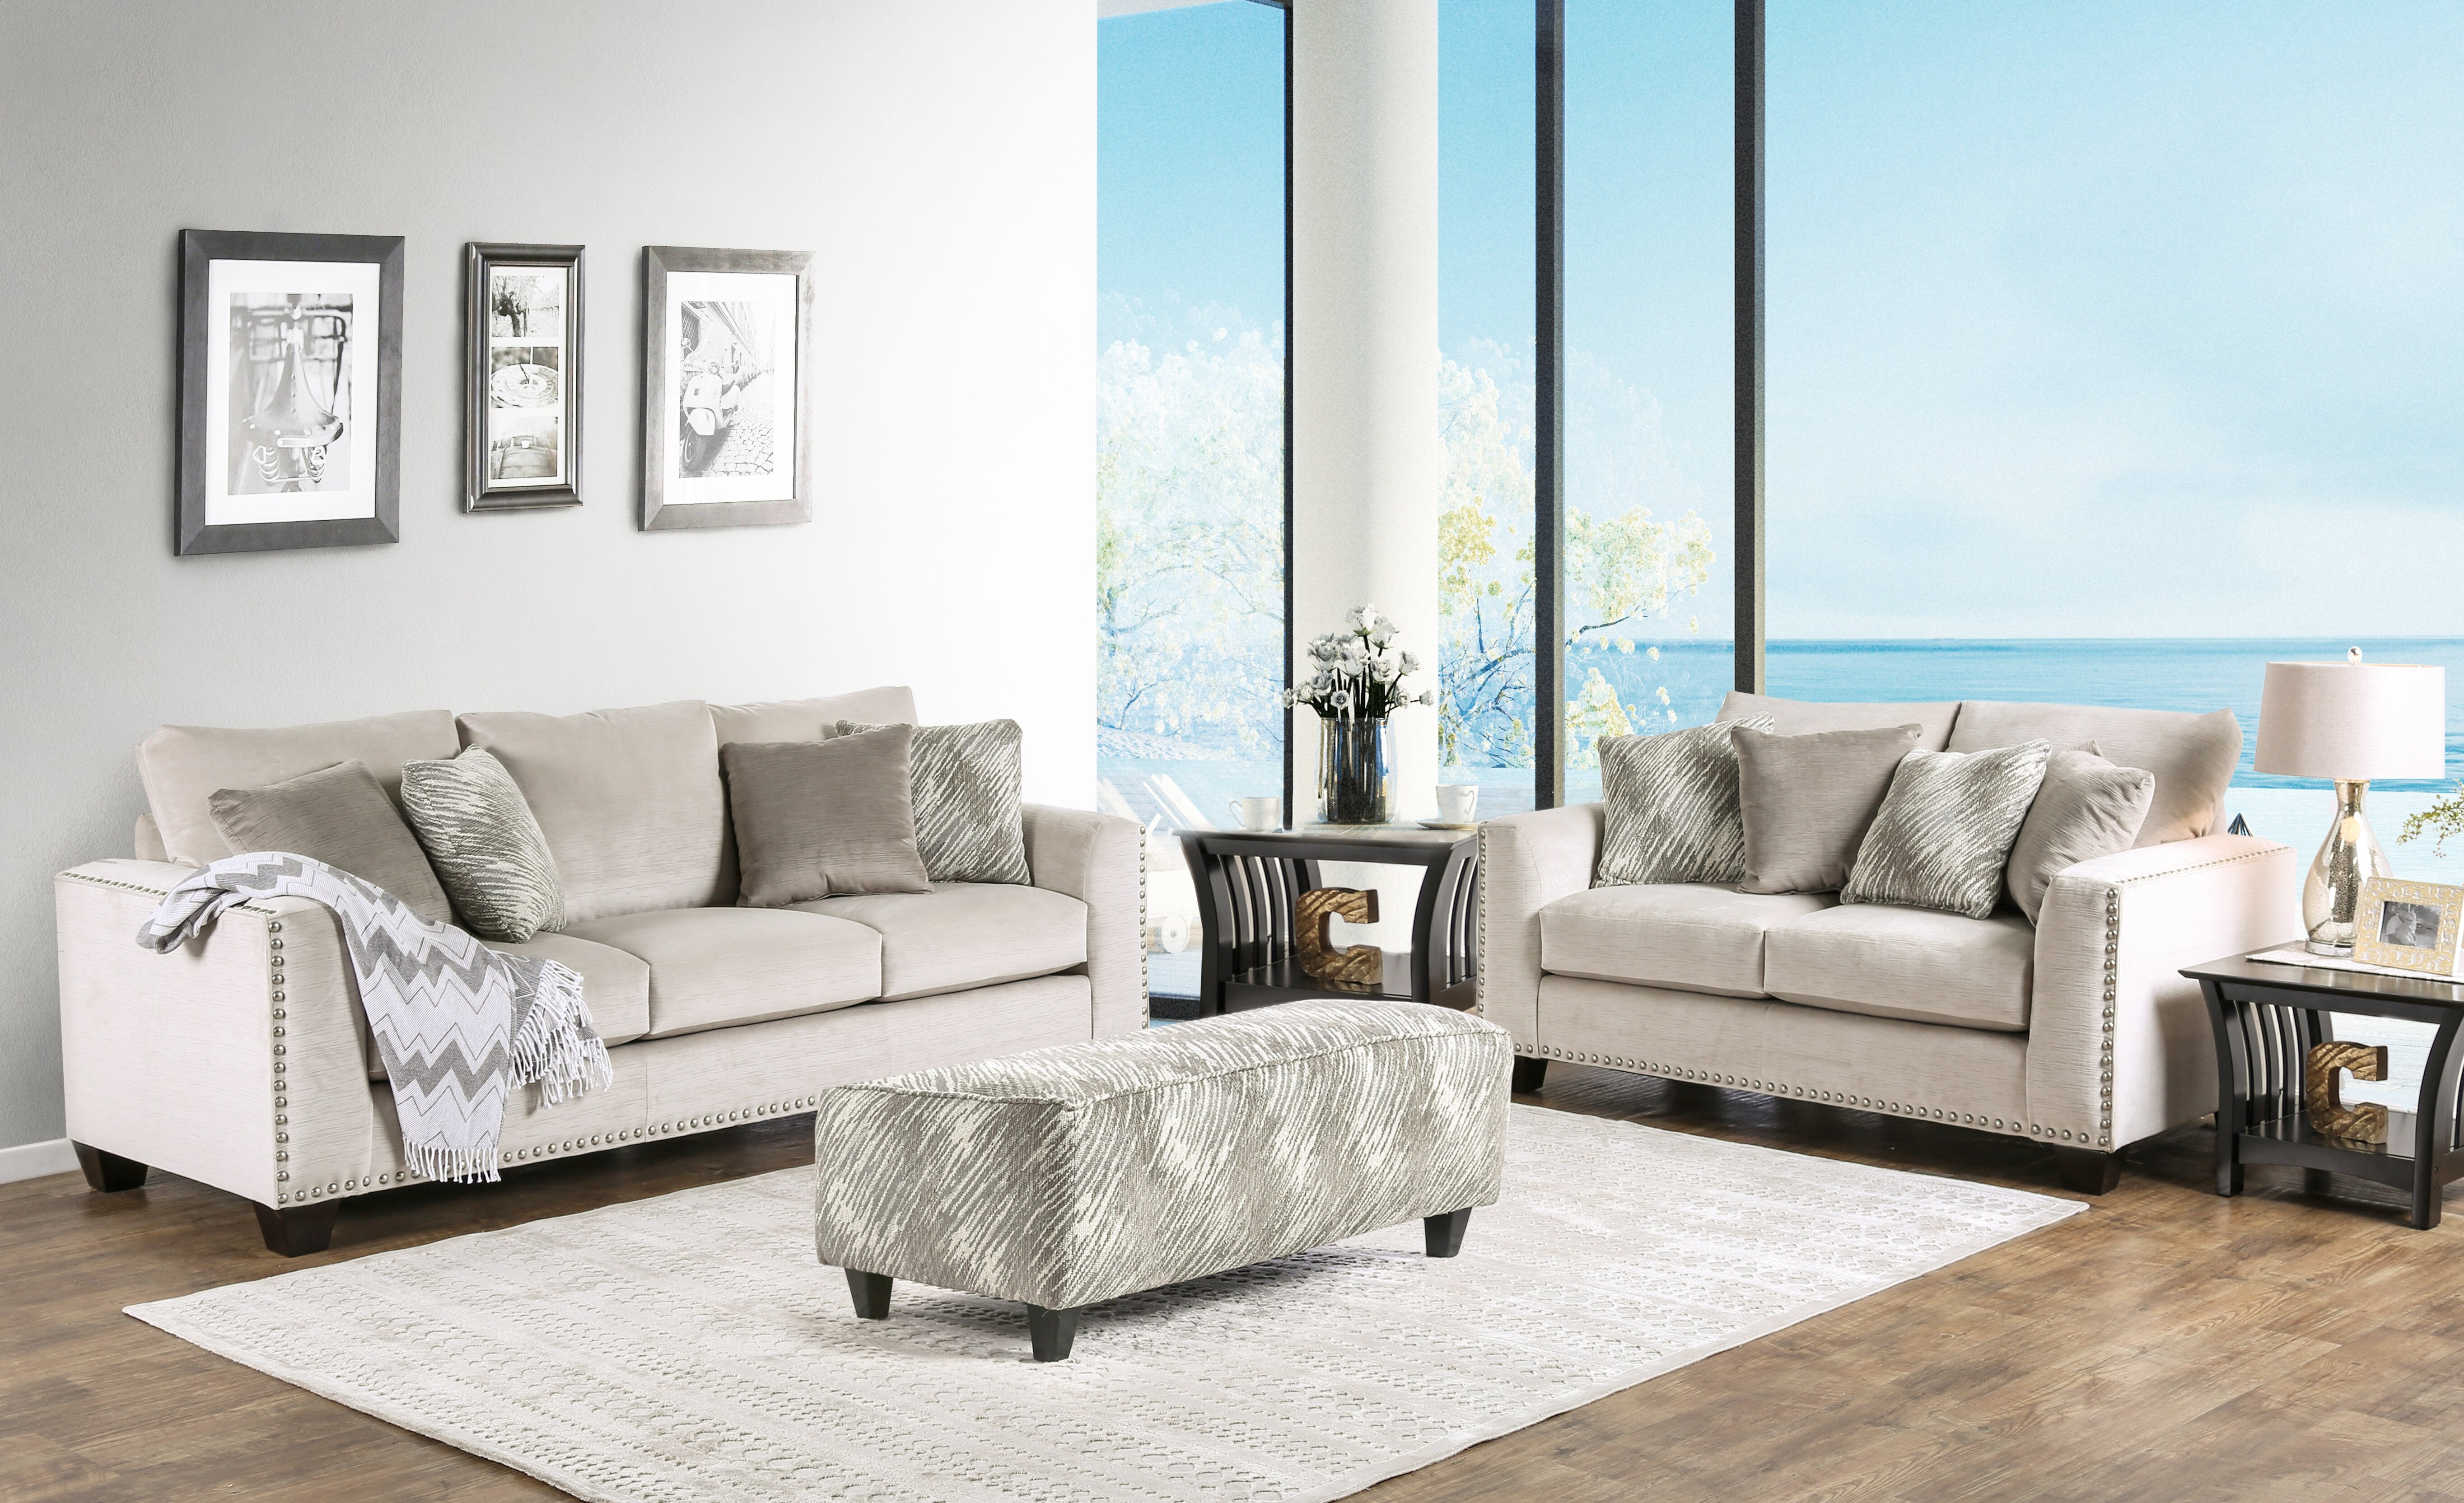 Brayden Studio Pinero Configurable Living Room Set | Wayfair